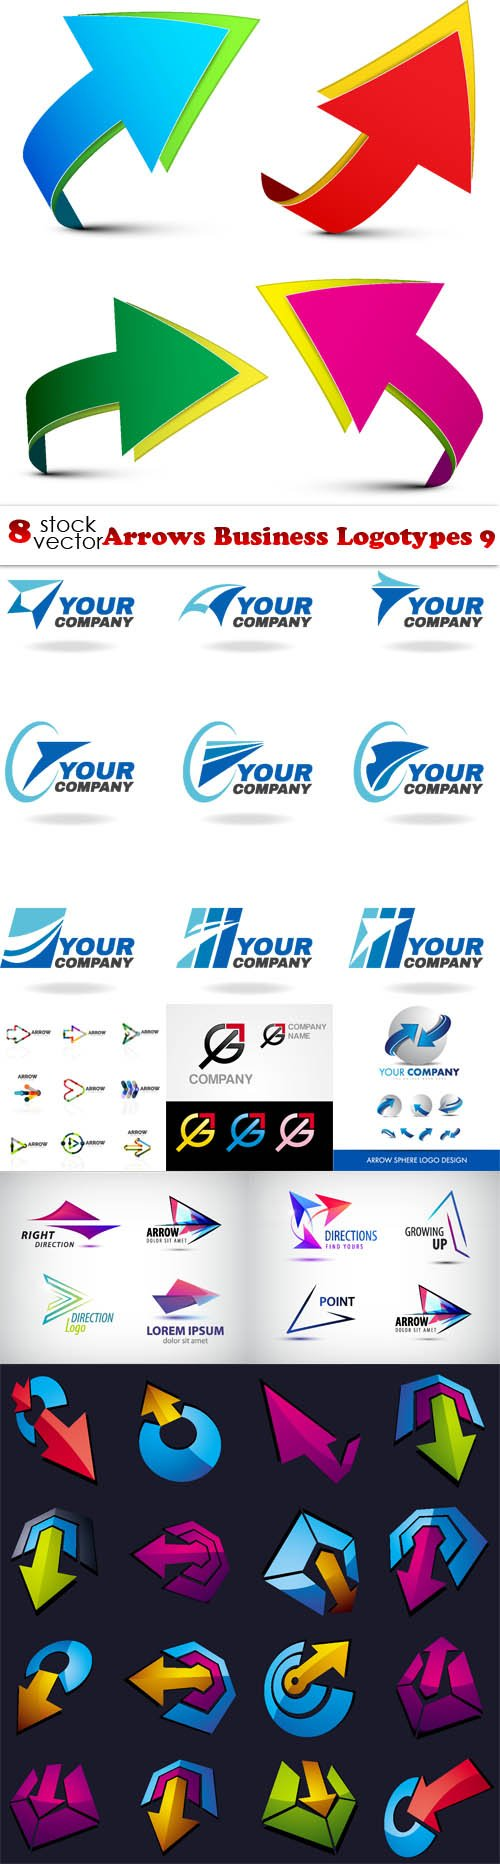 Vectors - Arrows Business Logotypes 9